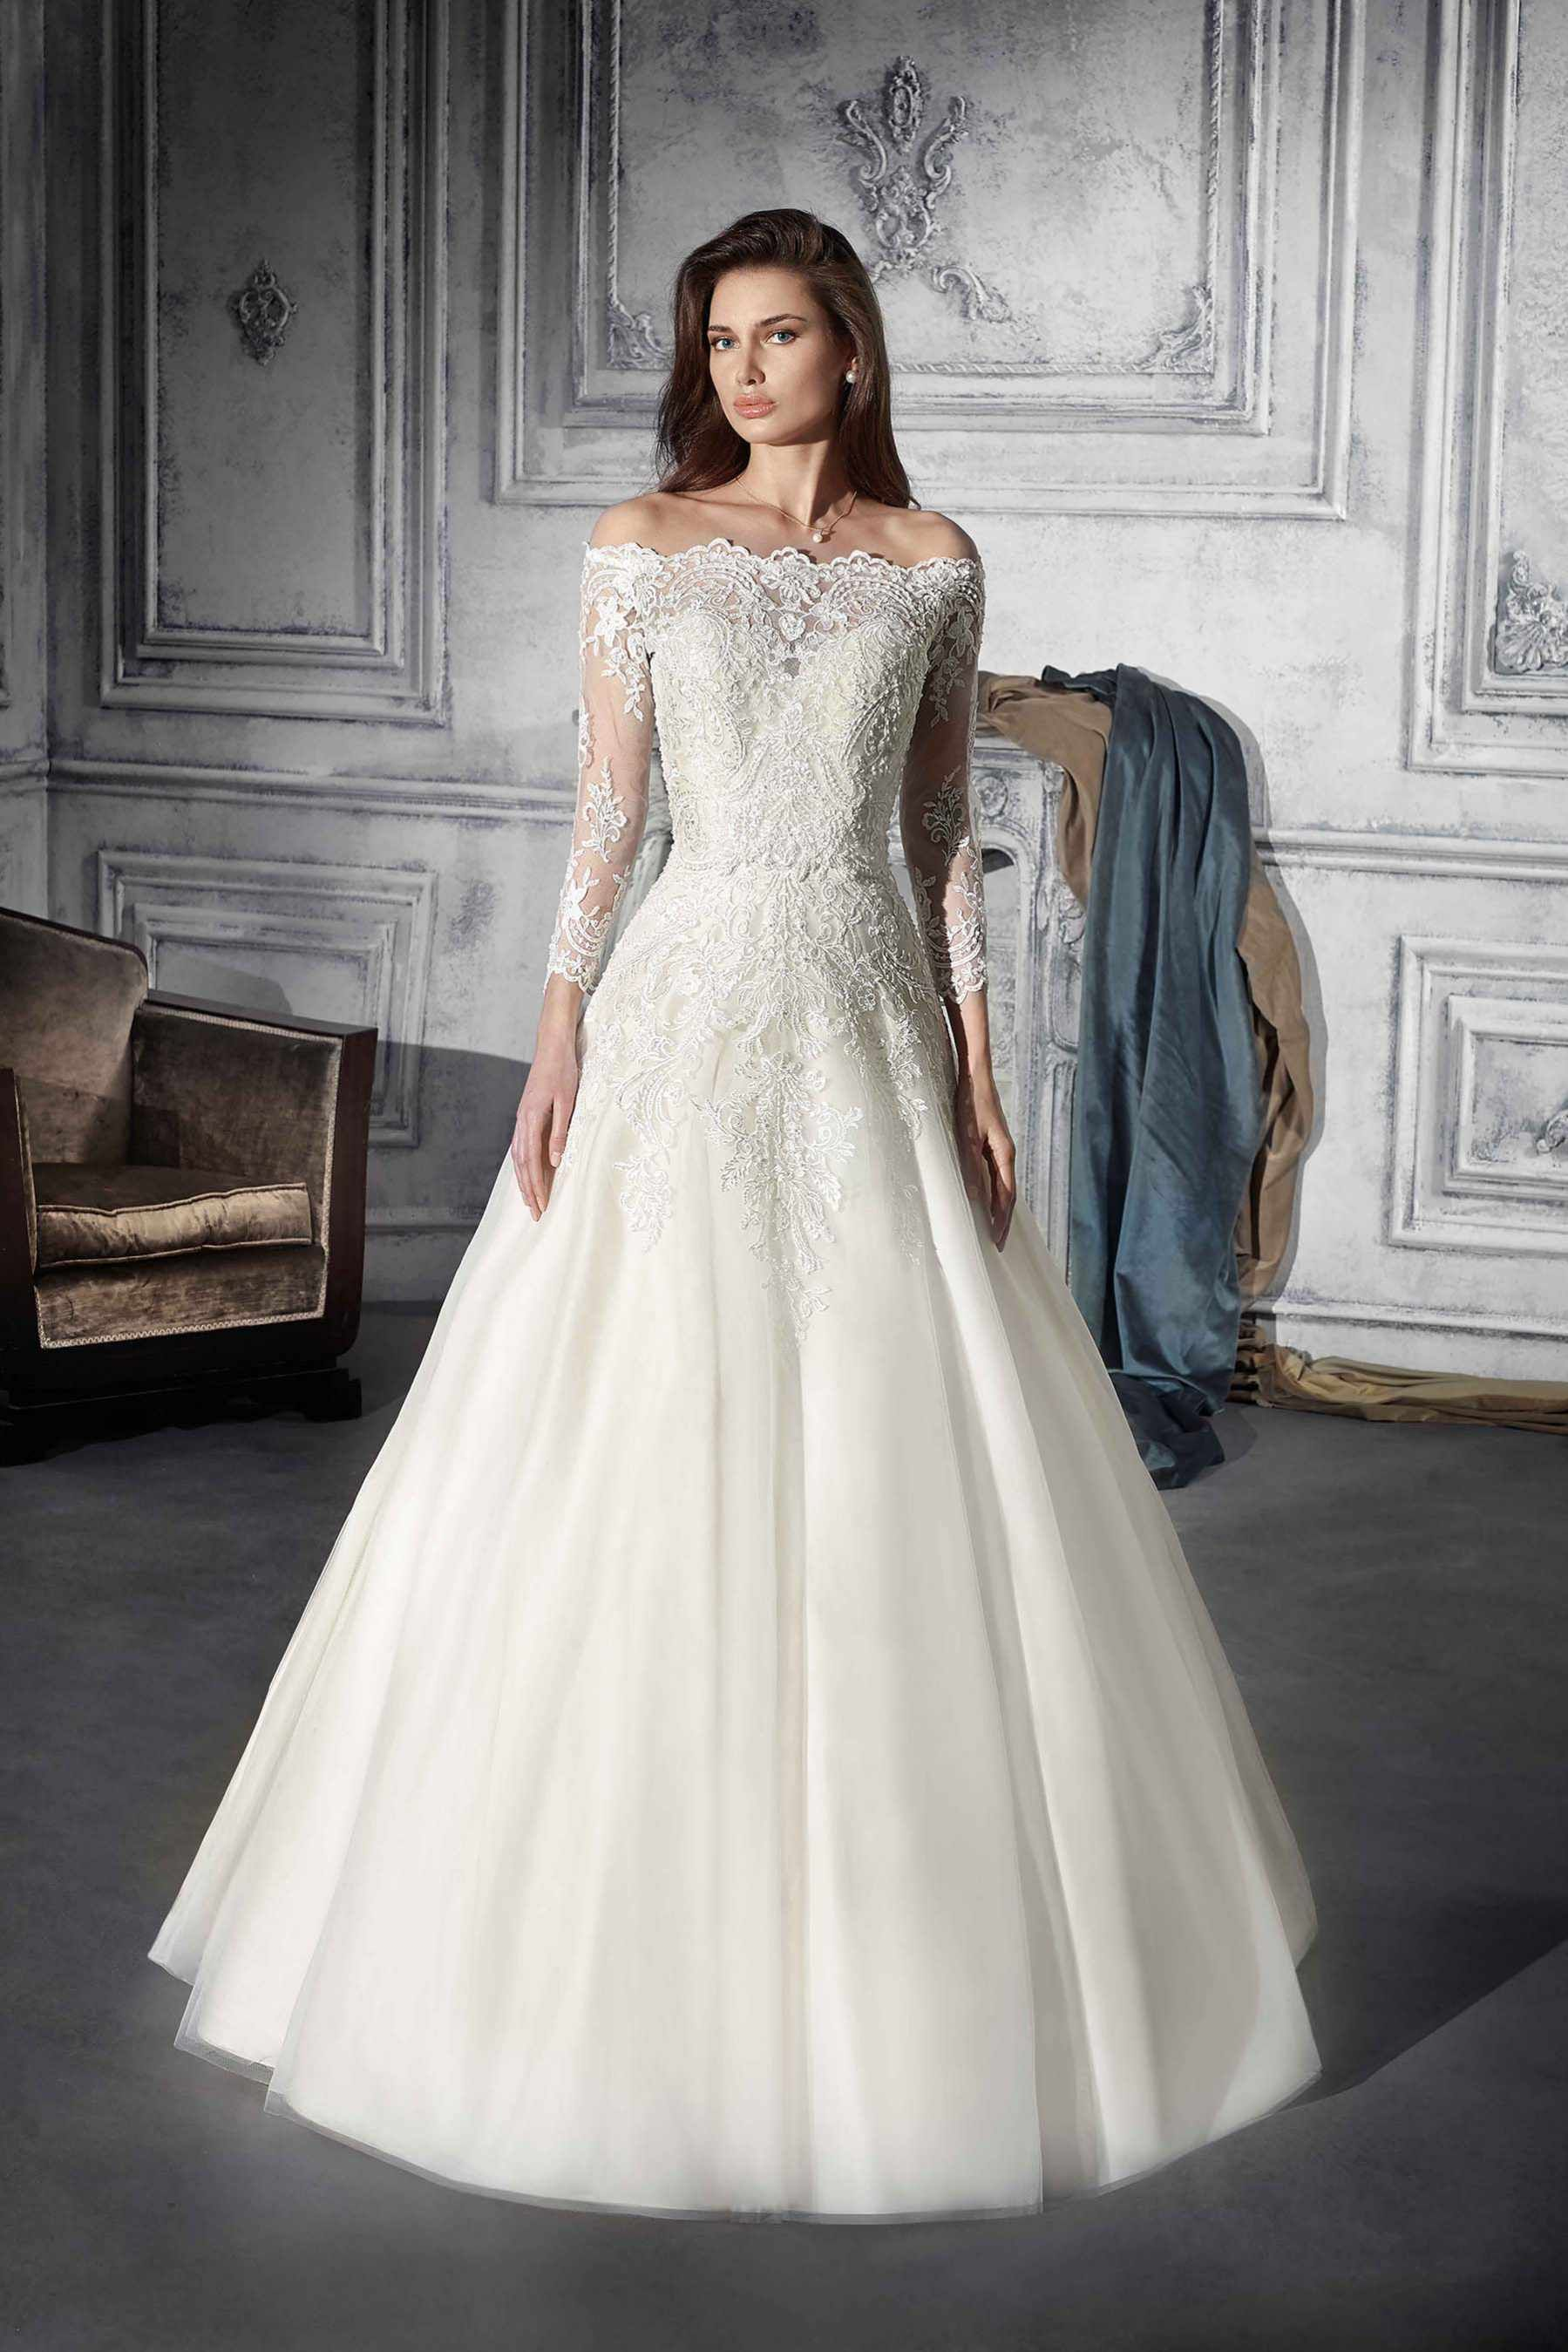 93ea63219cc Demetrios Wedding Dress - Style 734 An exquisite gown with a strapless